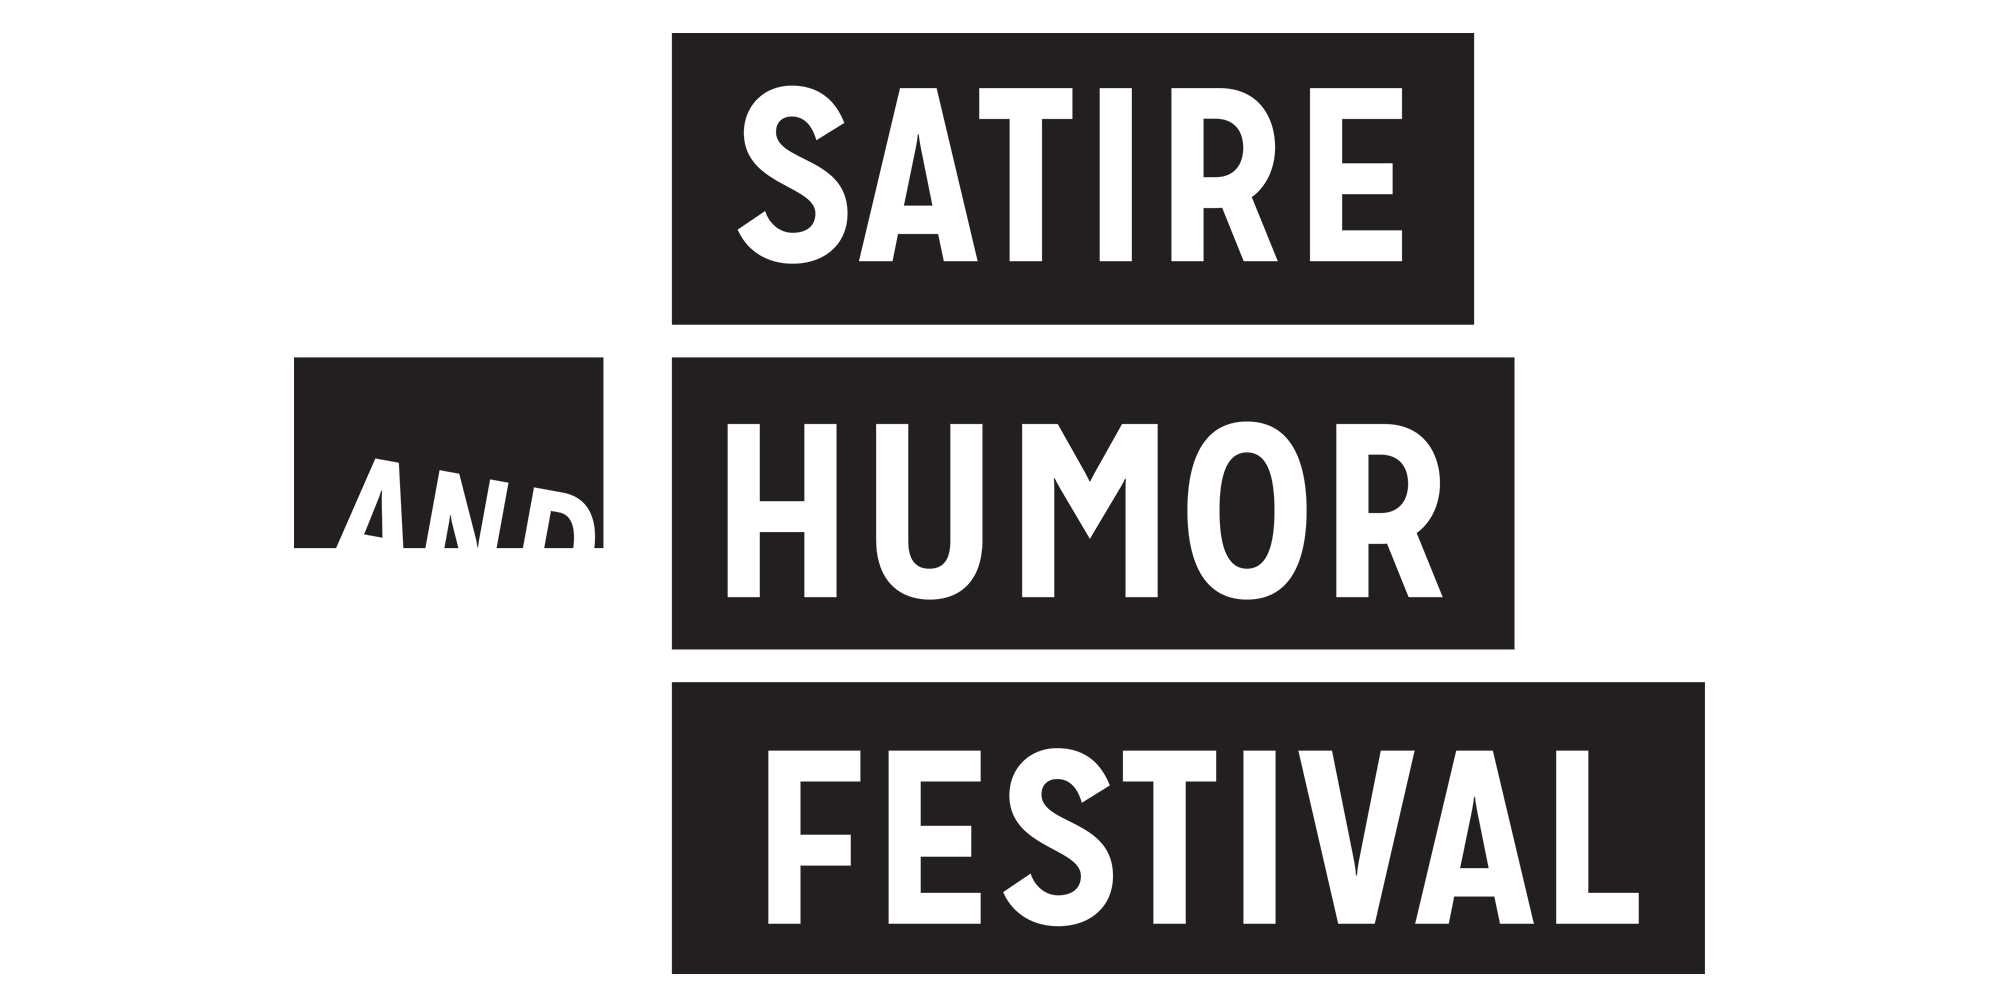 Satire And Humor Festival Real Life Track Changes Comedy Speed